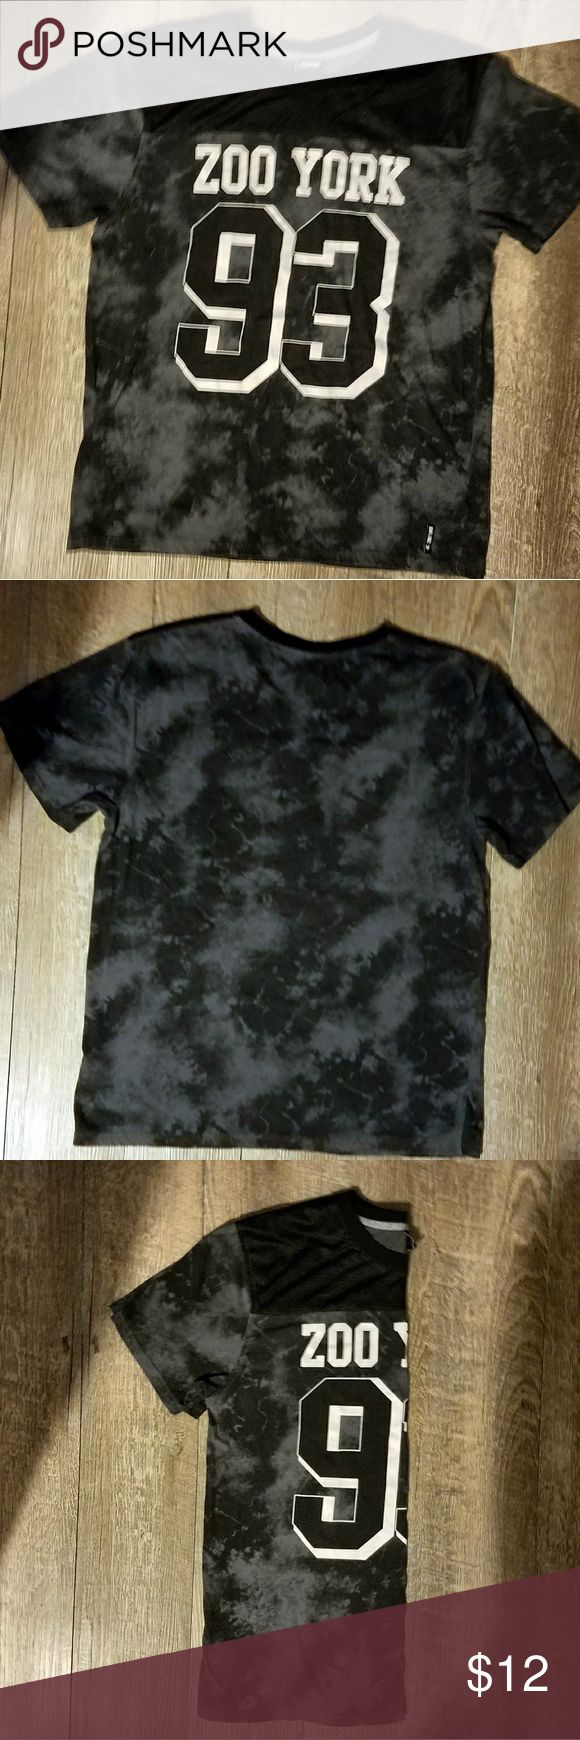 TIE DYE BLACK & GREY ZOO YORK T-SHIRT! EUC! Stylish Zoo York t-shirt, tie dyed with black and grey colors, white lettering on the front that says Zoo York 93. The top of the chest has a cool netting covering.   Material: 60% Cotton and 40% Polyester Zoo York Shirts Tees - Short Sleeve